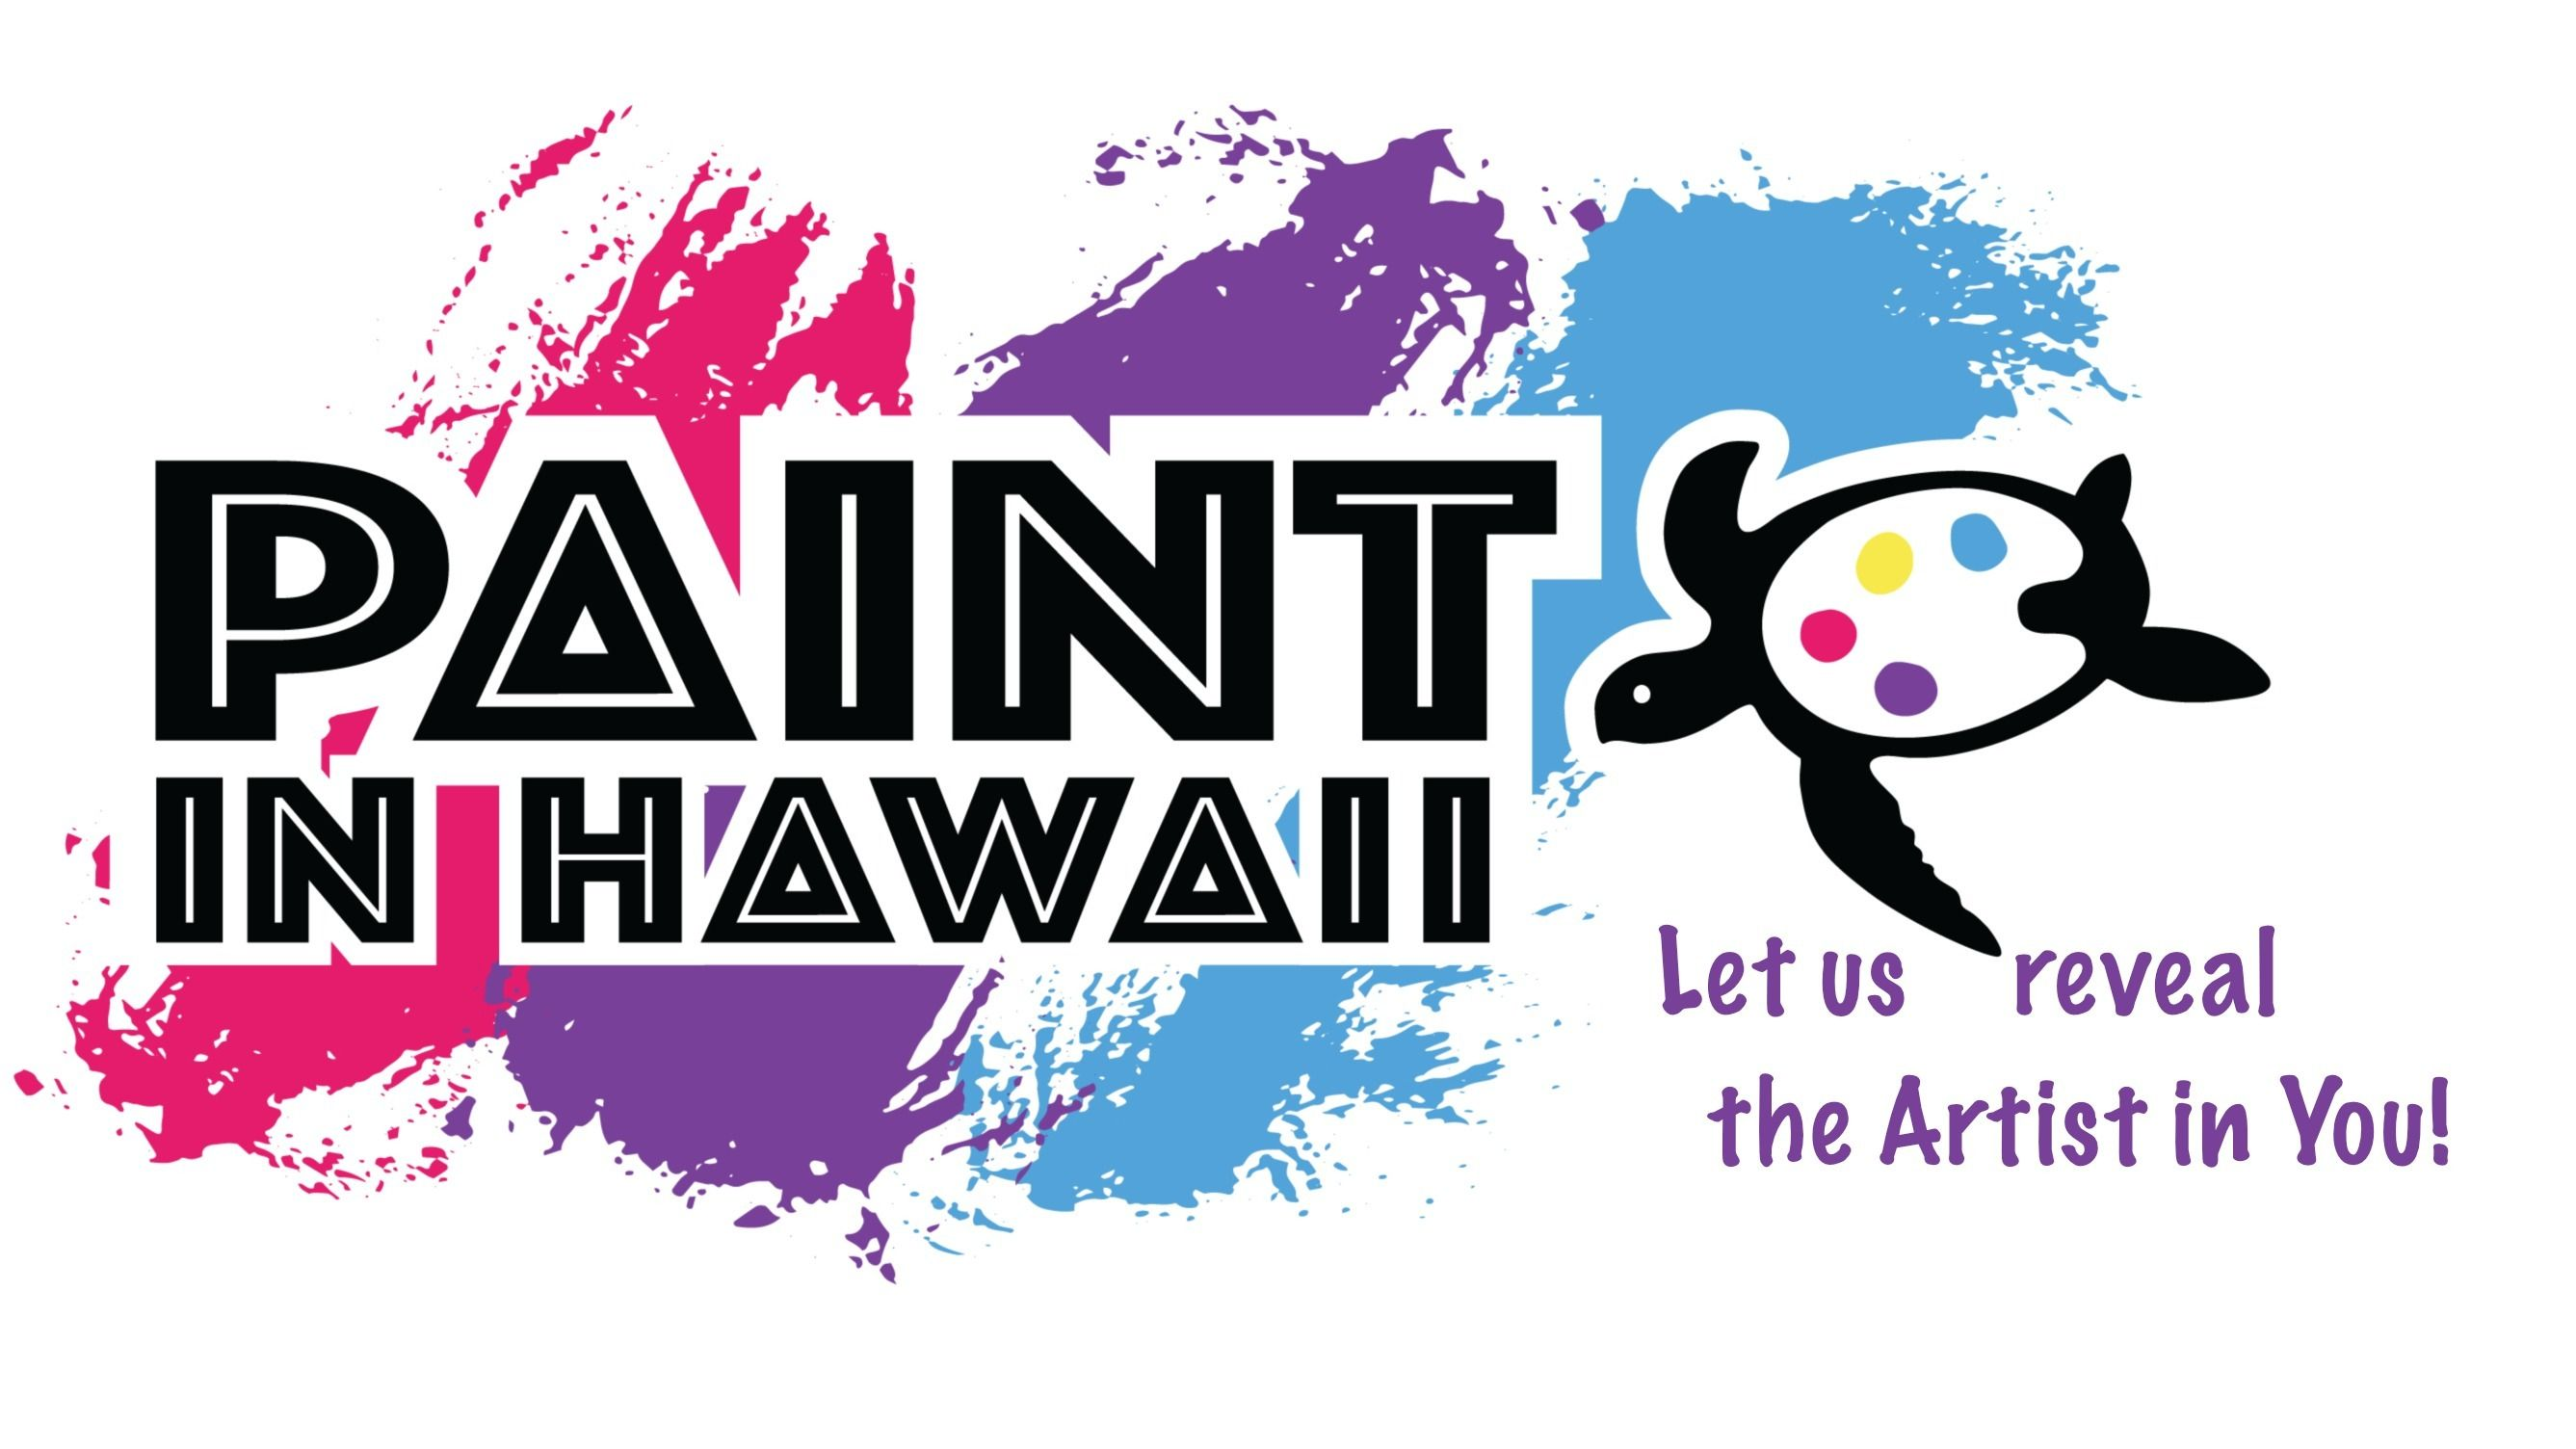 Paint in Hawaii